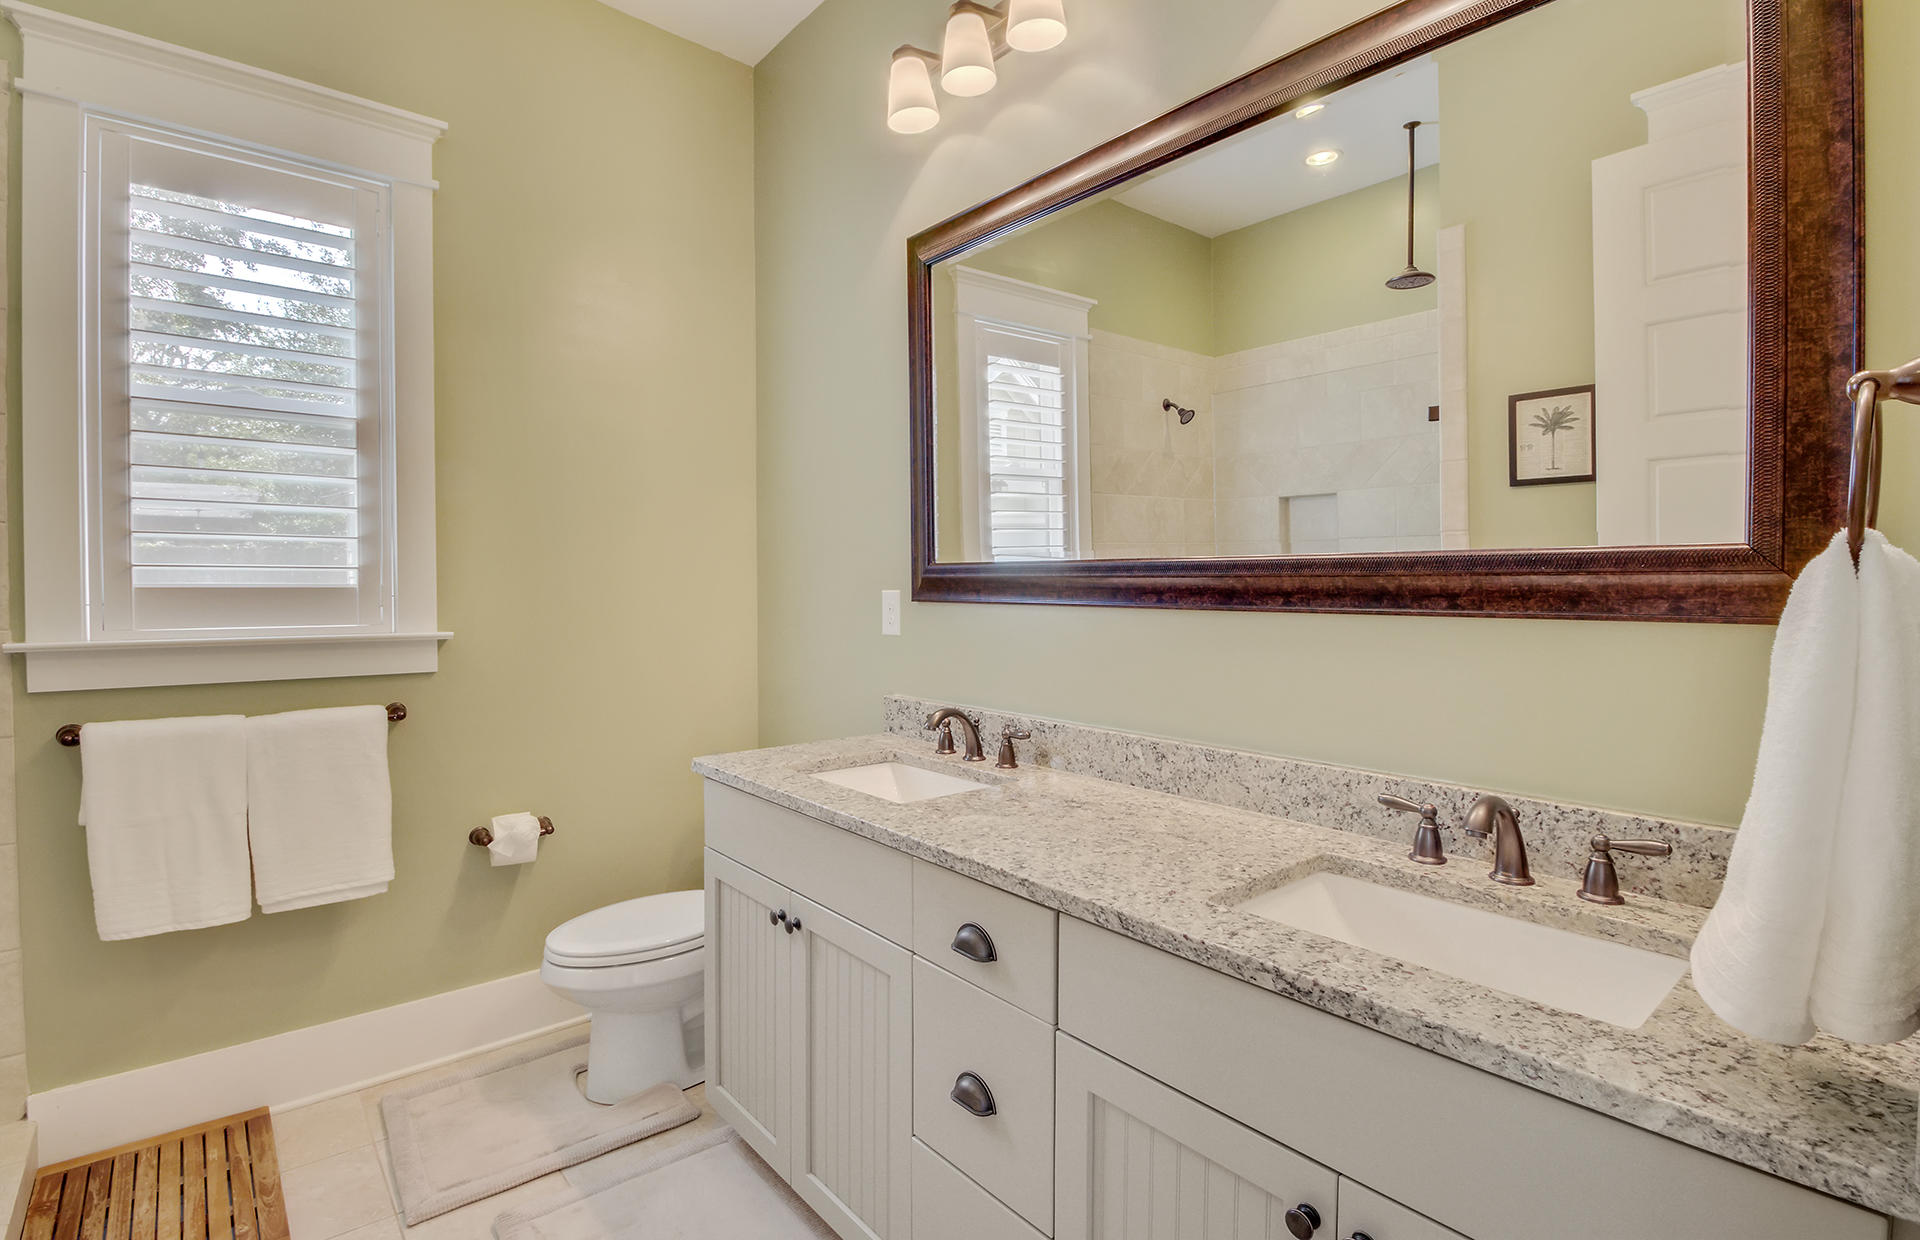 Wexford Park Homes For Sale - 1141 Wexford, Mount Pleasant, SC - 22